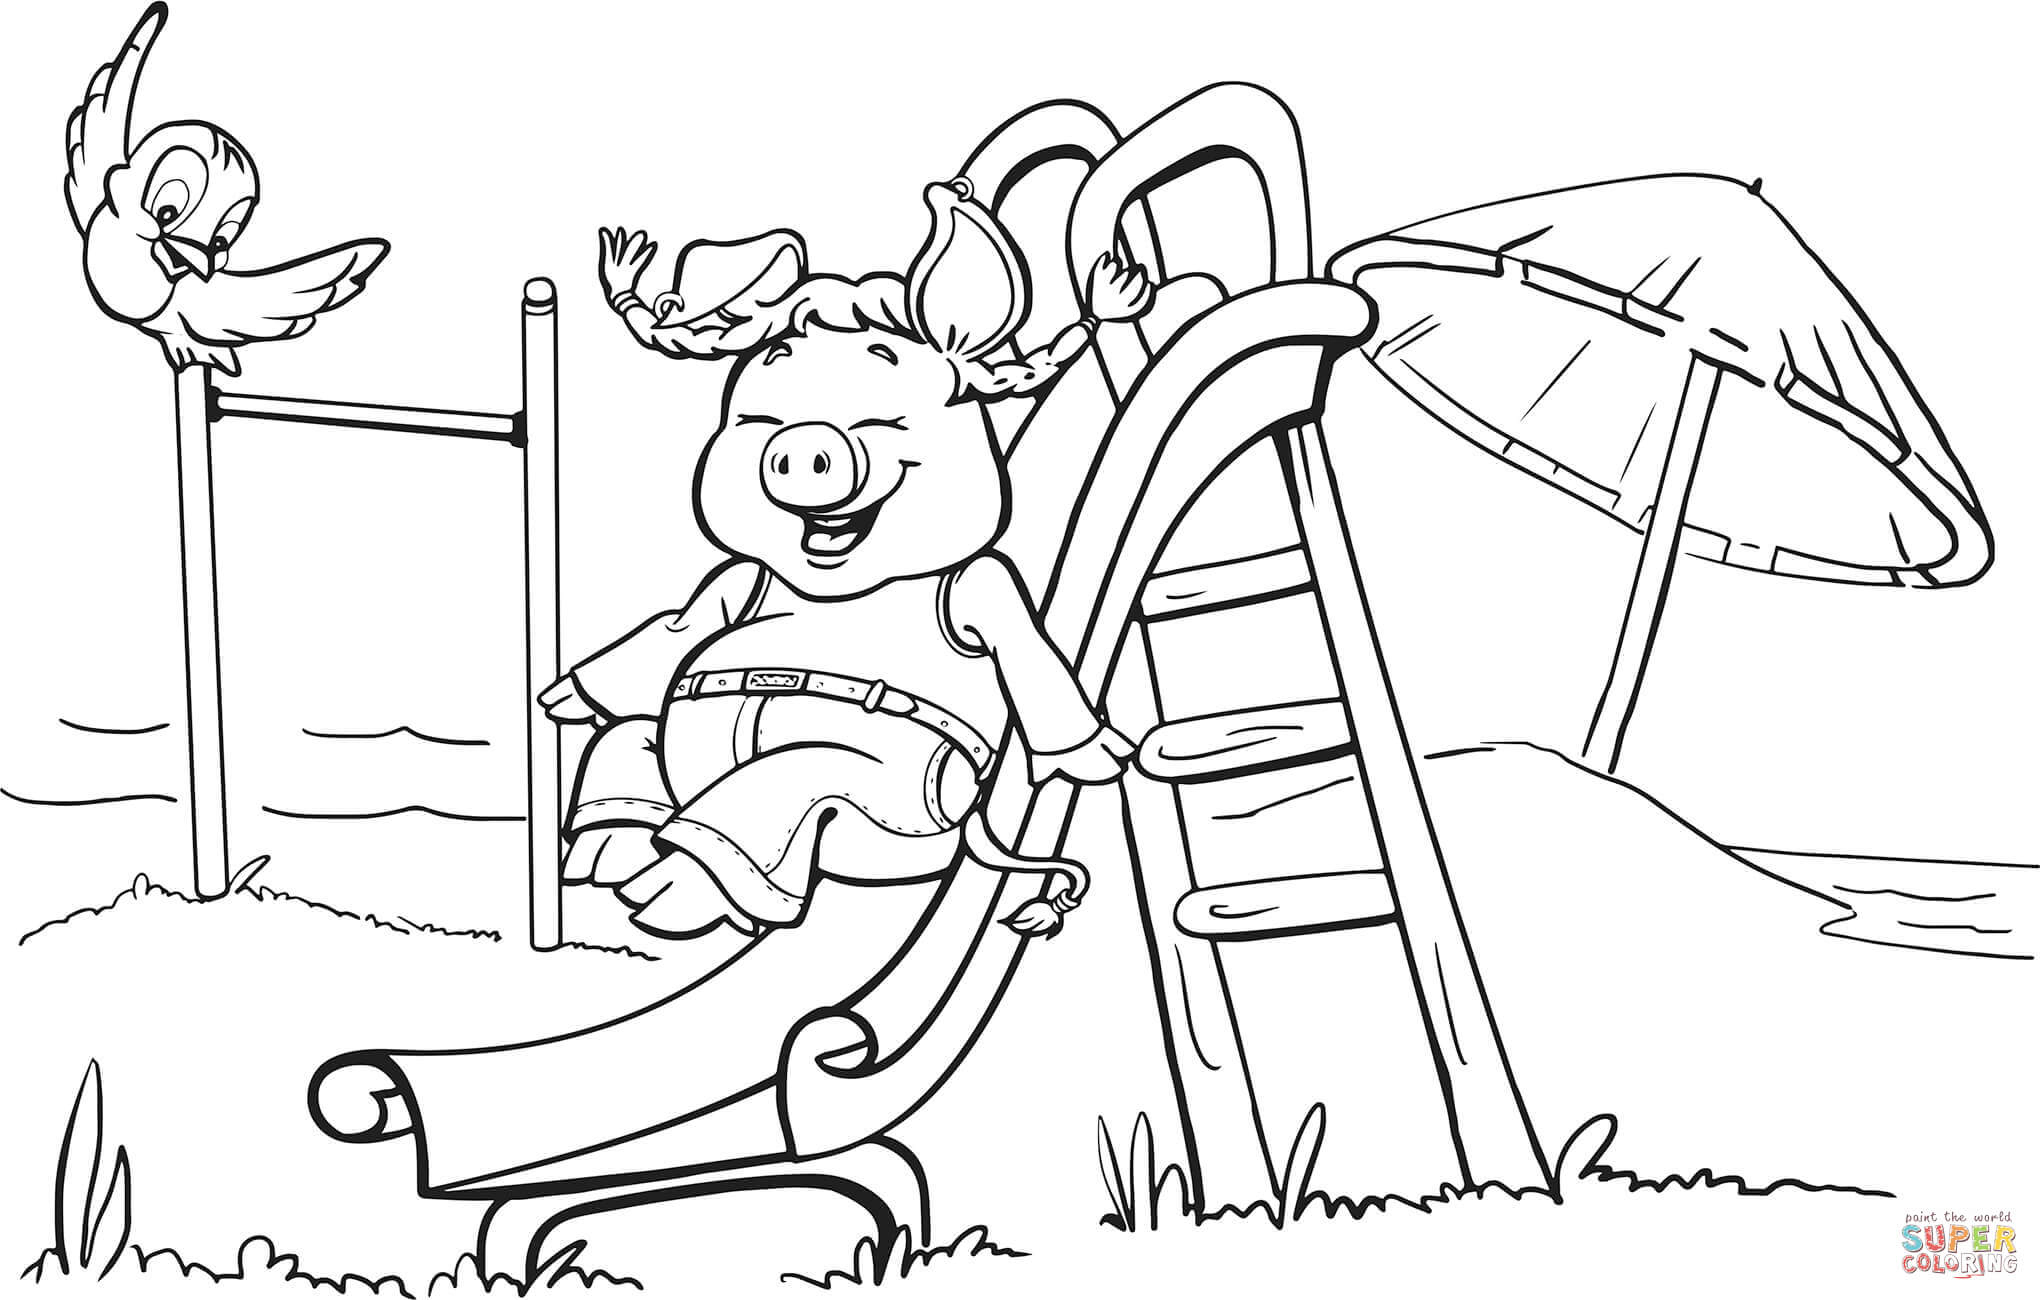 Pig On The Playground Slide Coloring Page | Free Printable Coloring | Free Printable Playground Coloring Worksheets